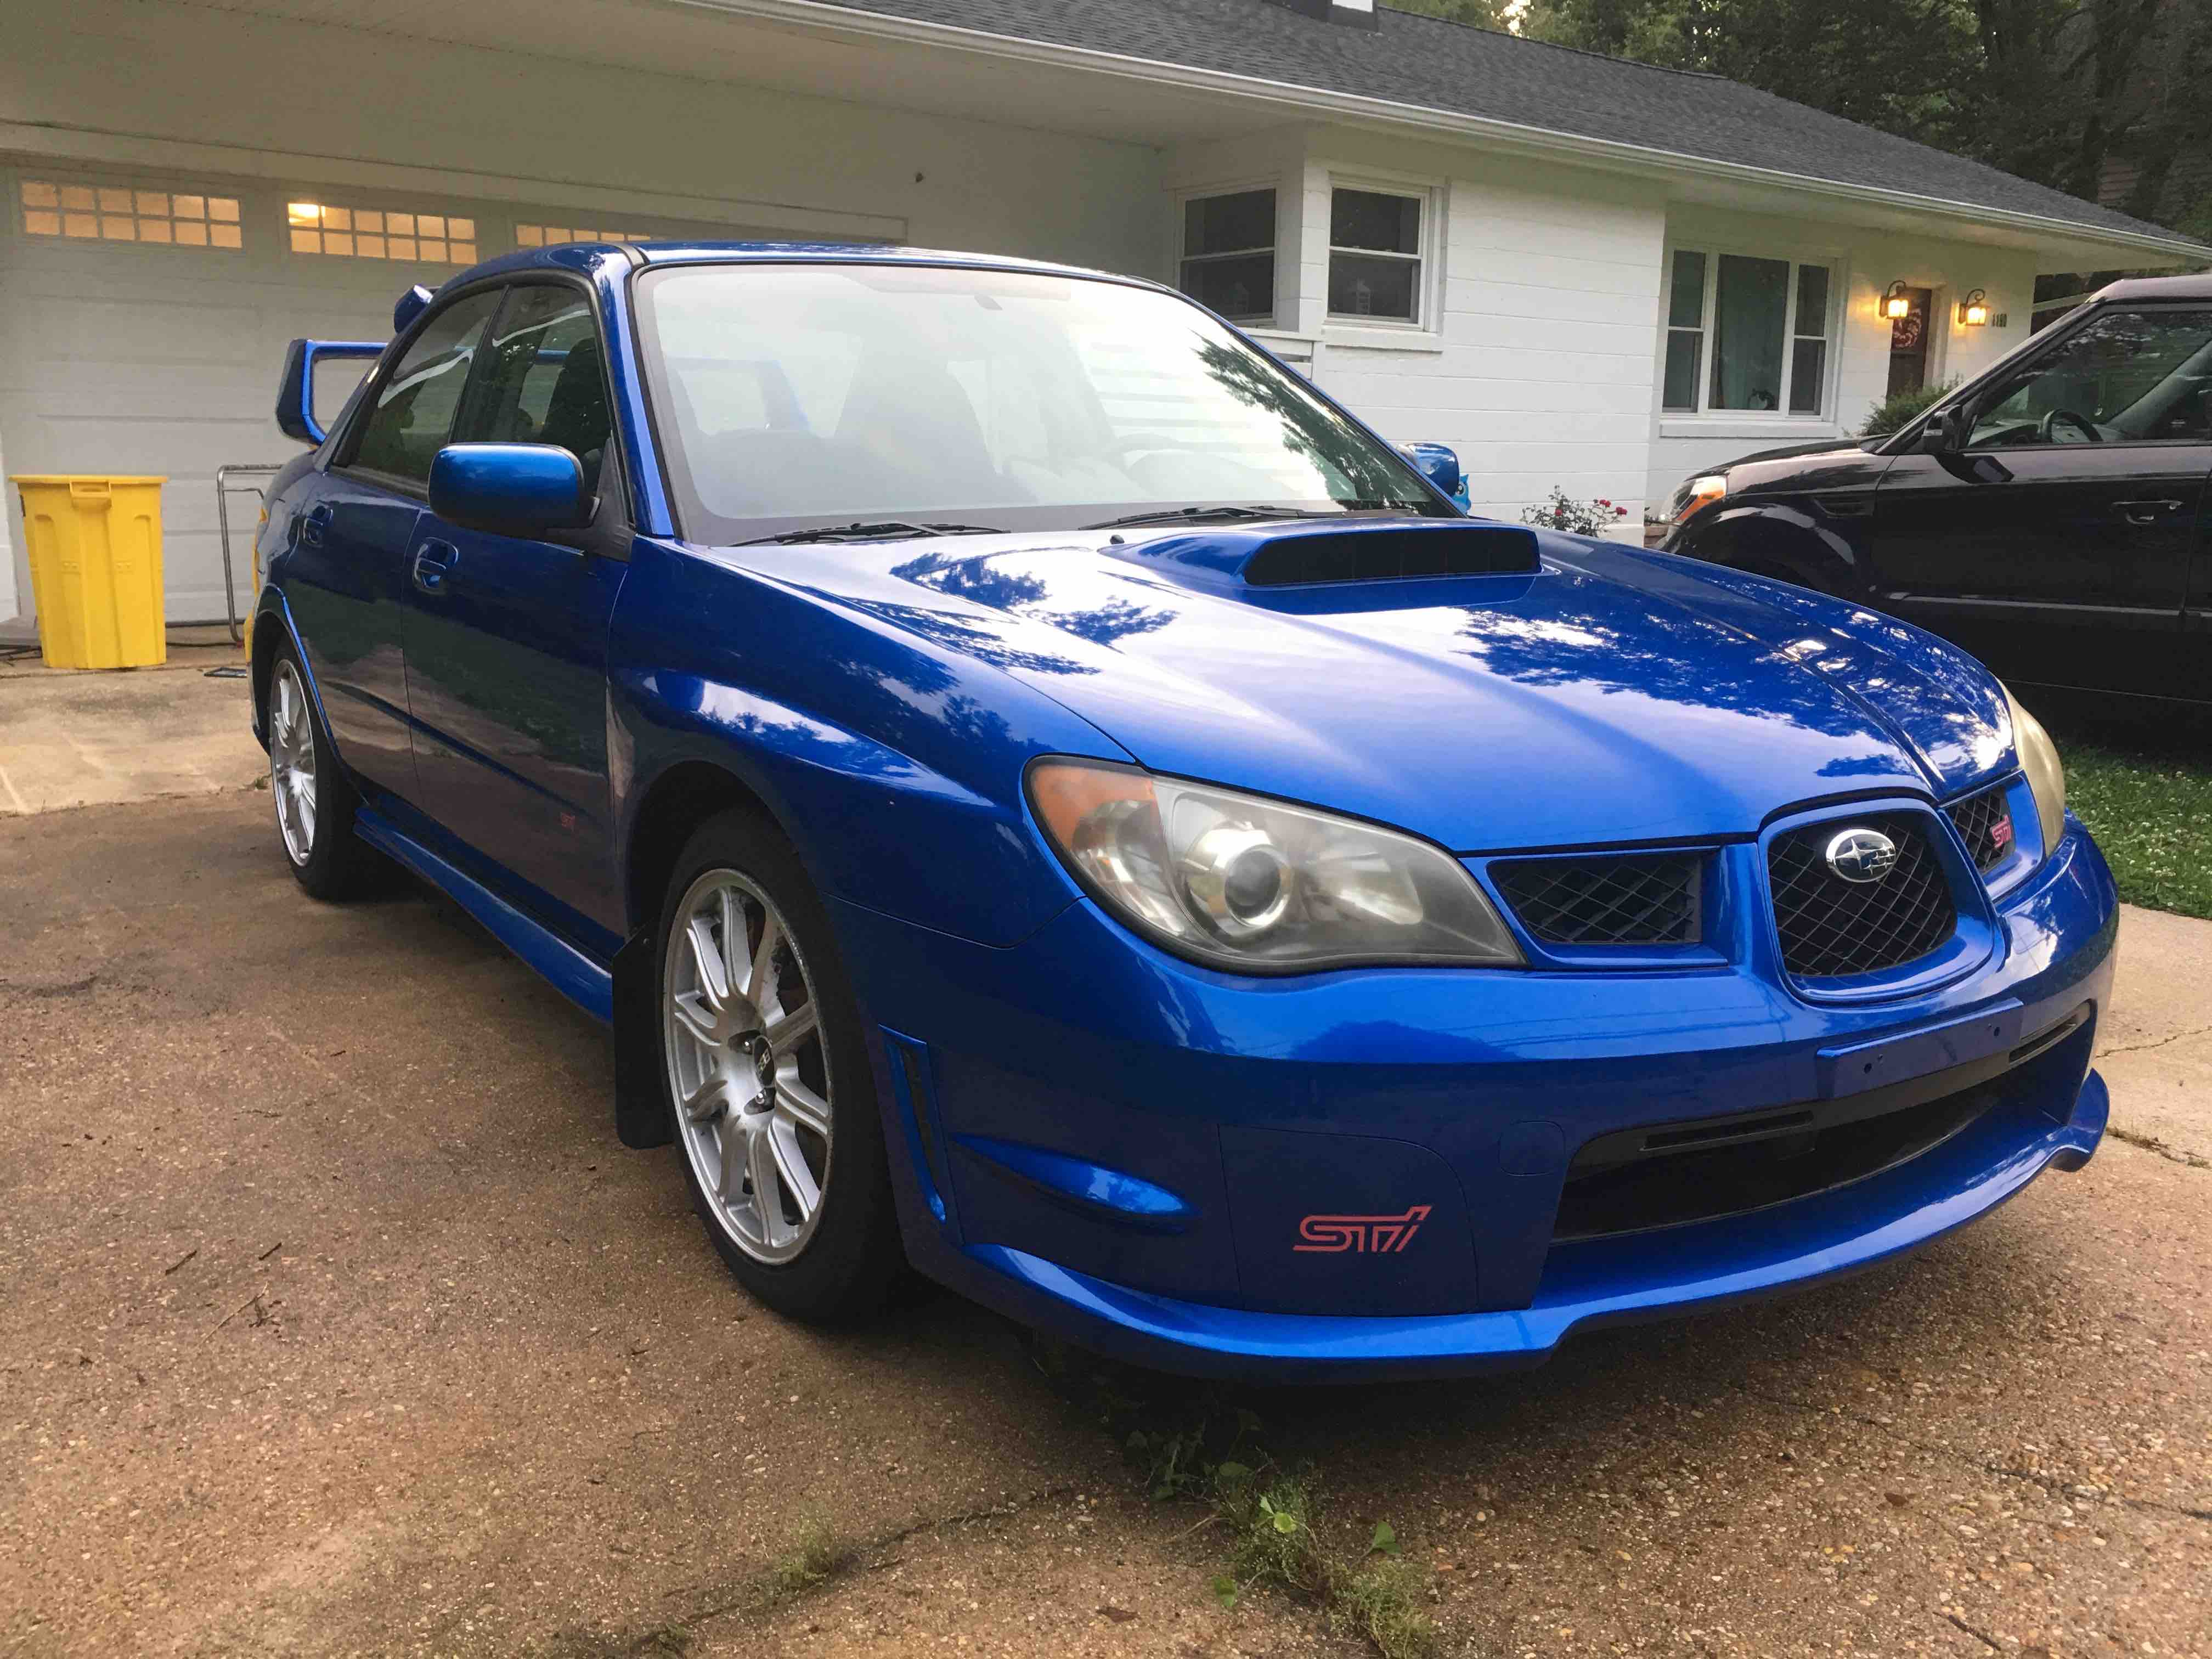 2006 STi WRB 2nd owner, AndrewTech built forged internals-img_5786-jpeg